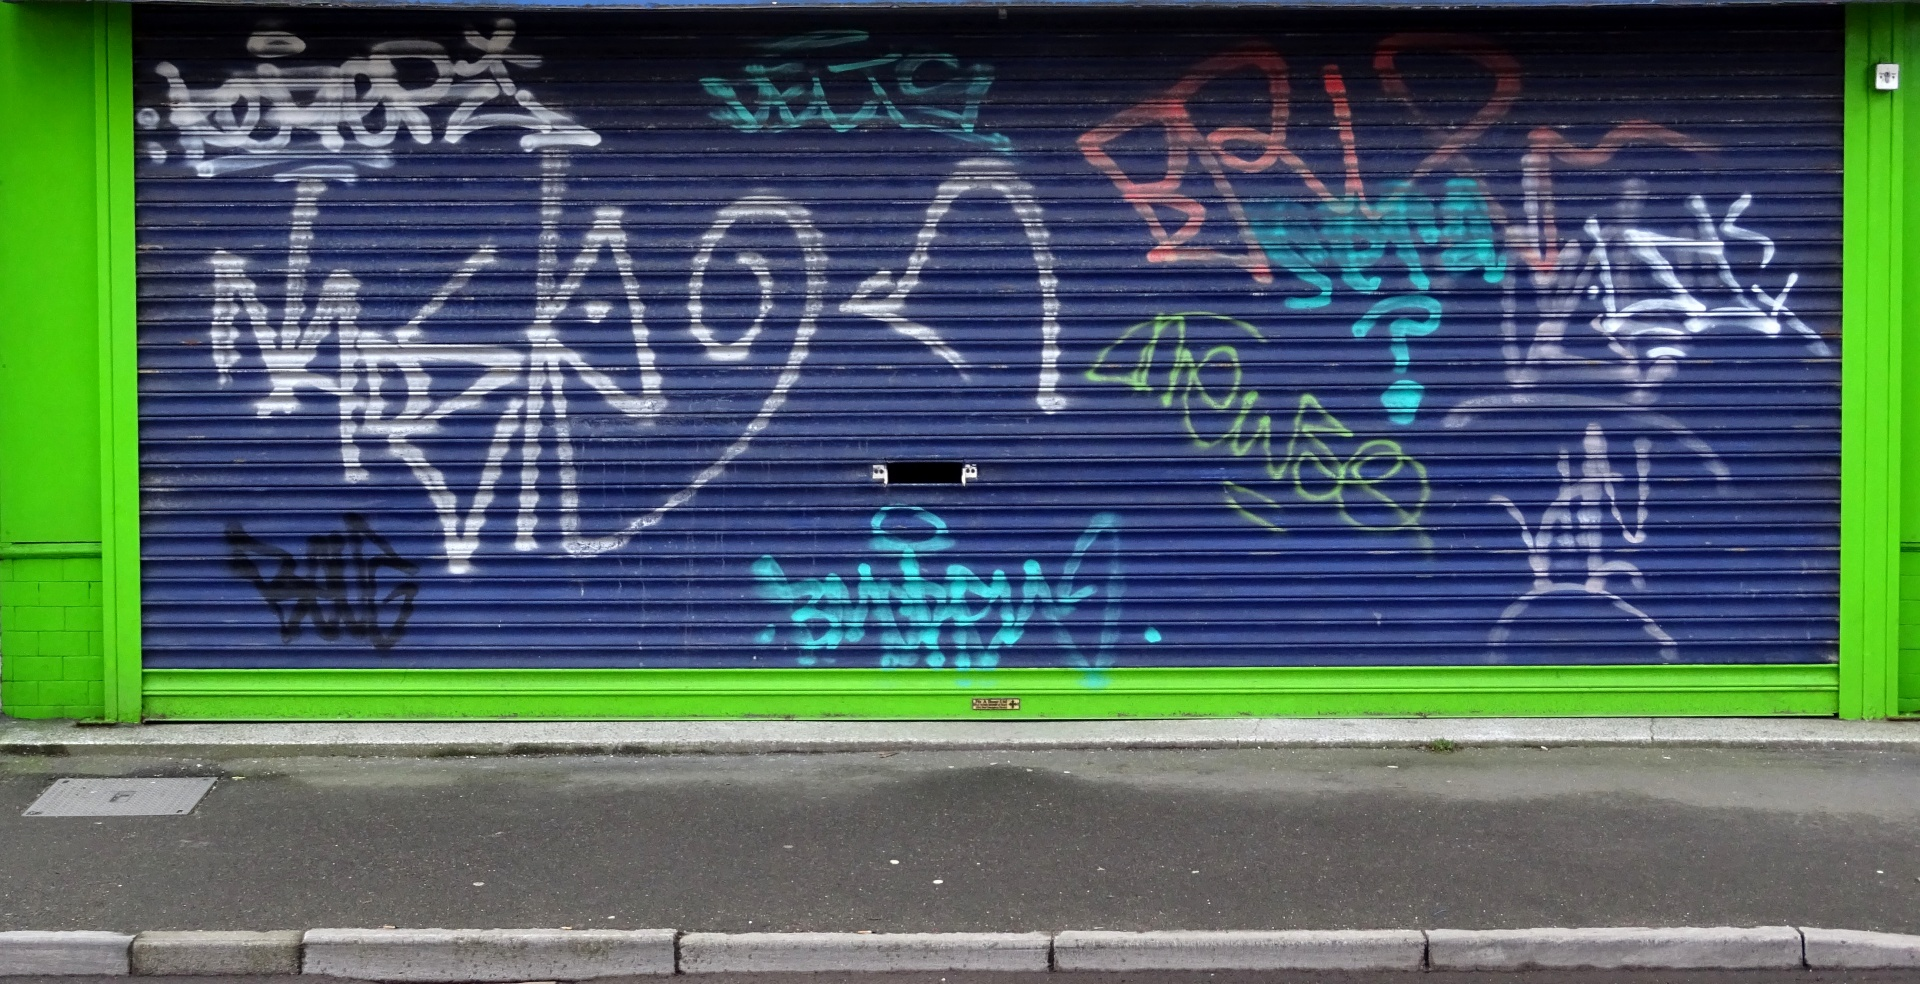 graffiti-on-shop-shutters